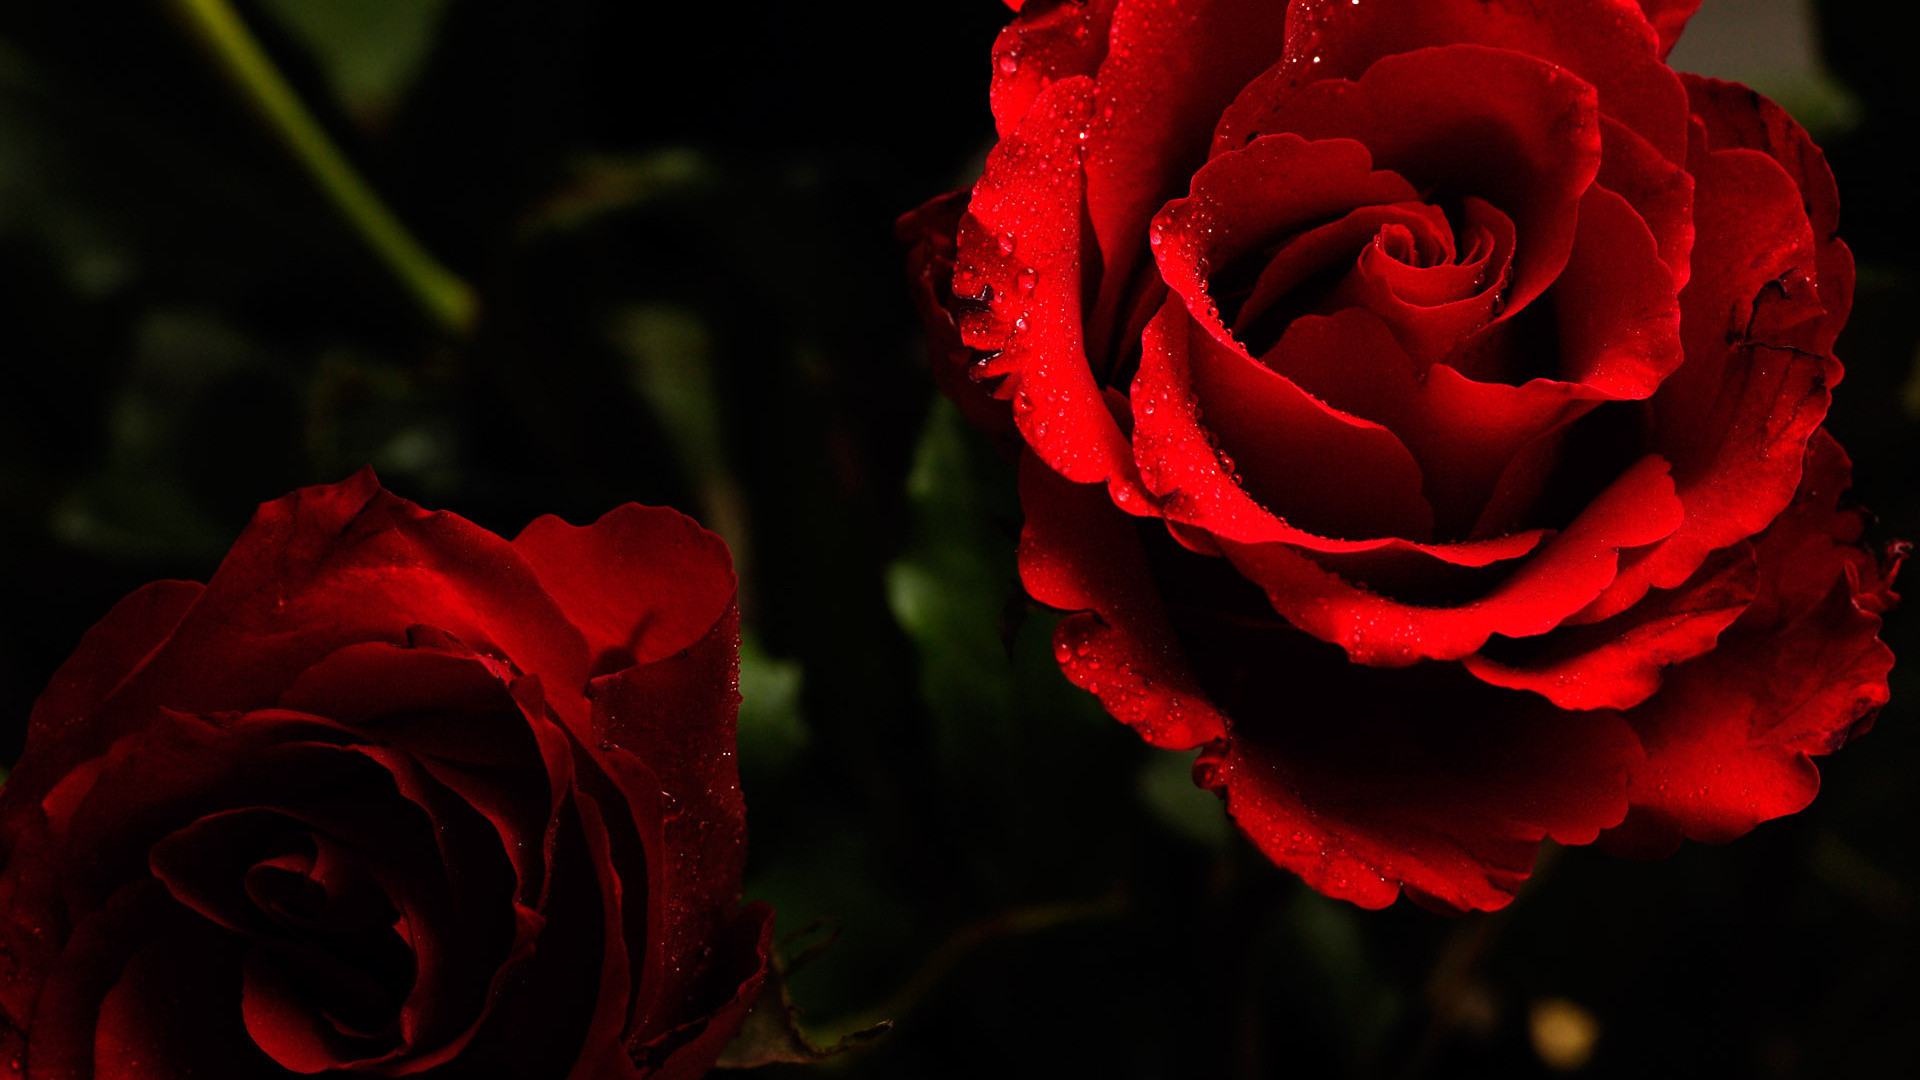 red roses on a dark background wallpapers and images – wallpapers .